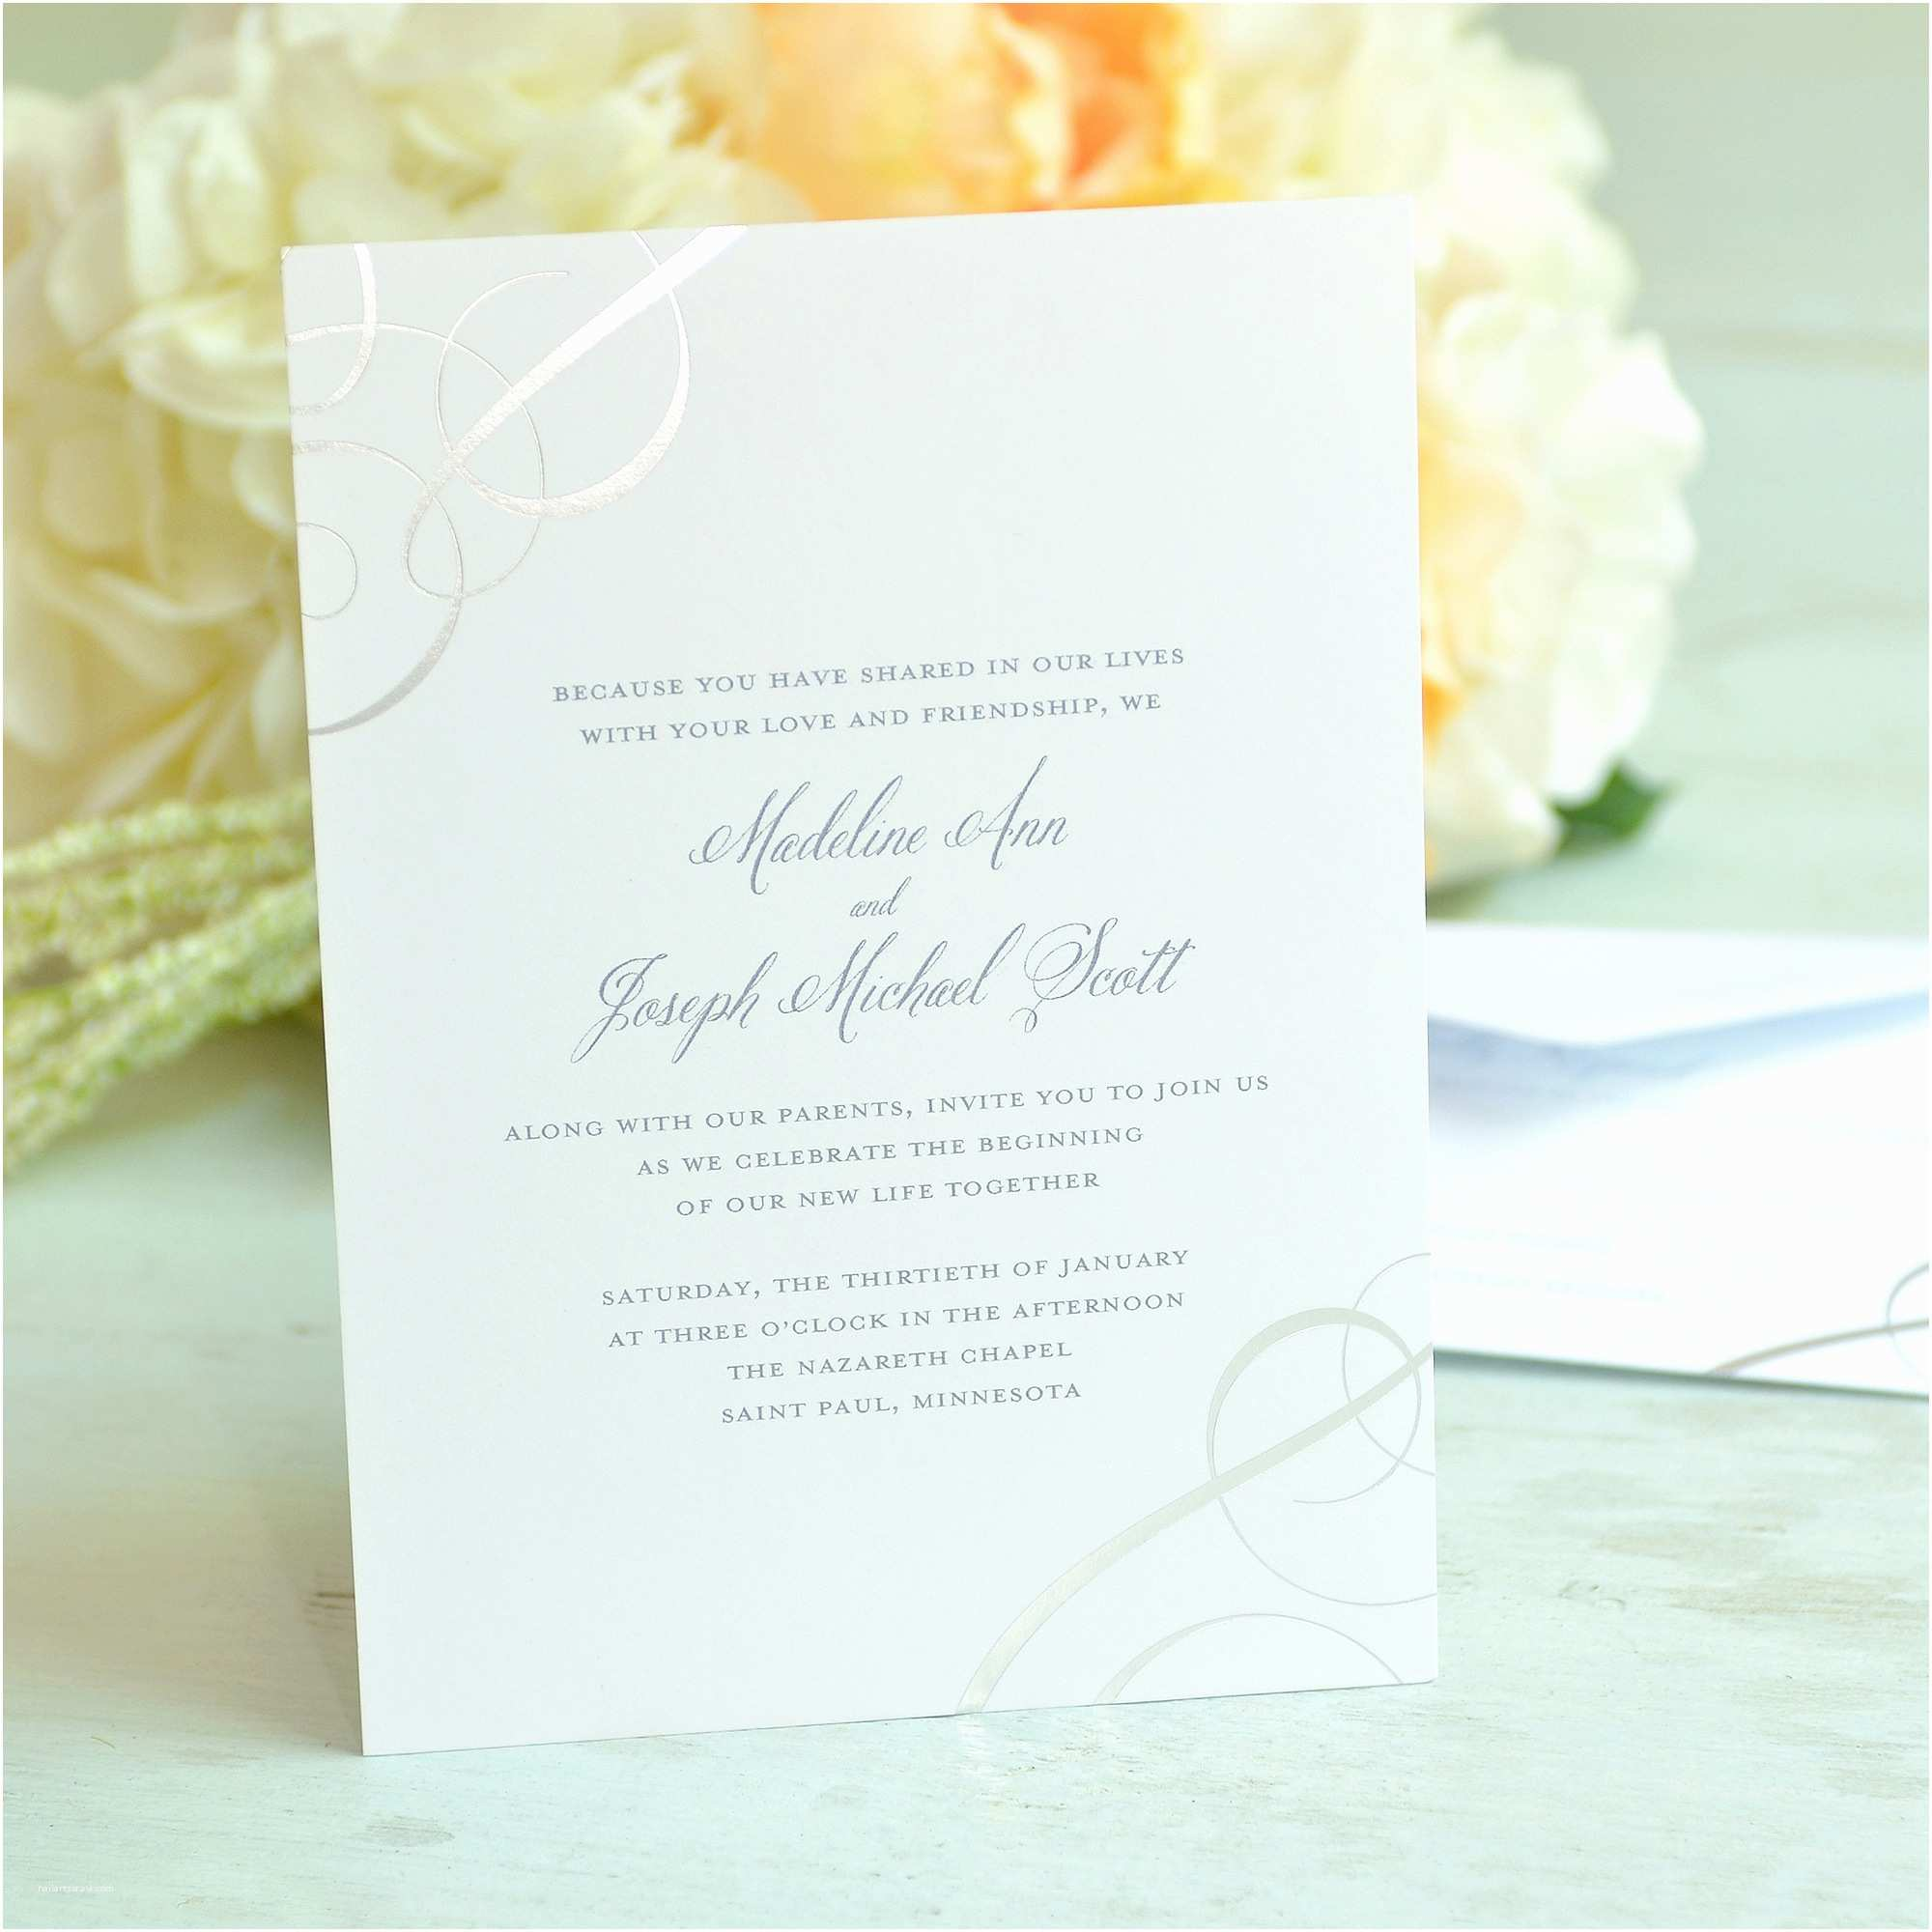 Walmart Wedding Invitations Make Your Own Wedding Invitations Walmart Modern Designs